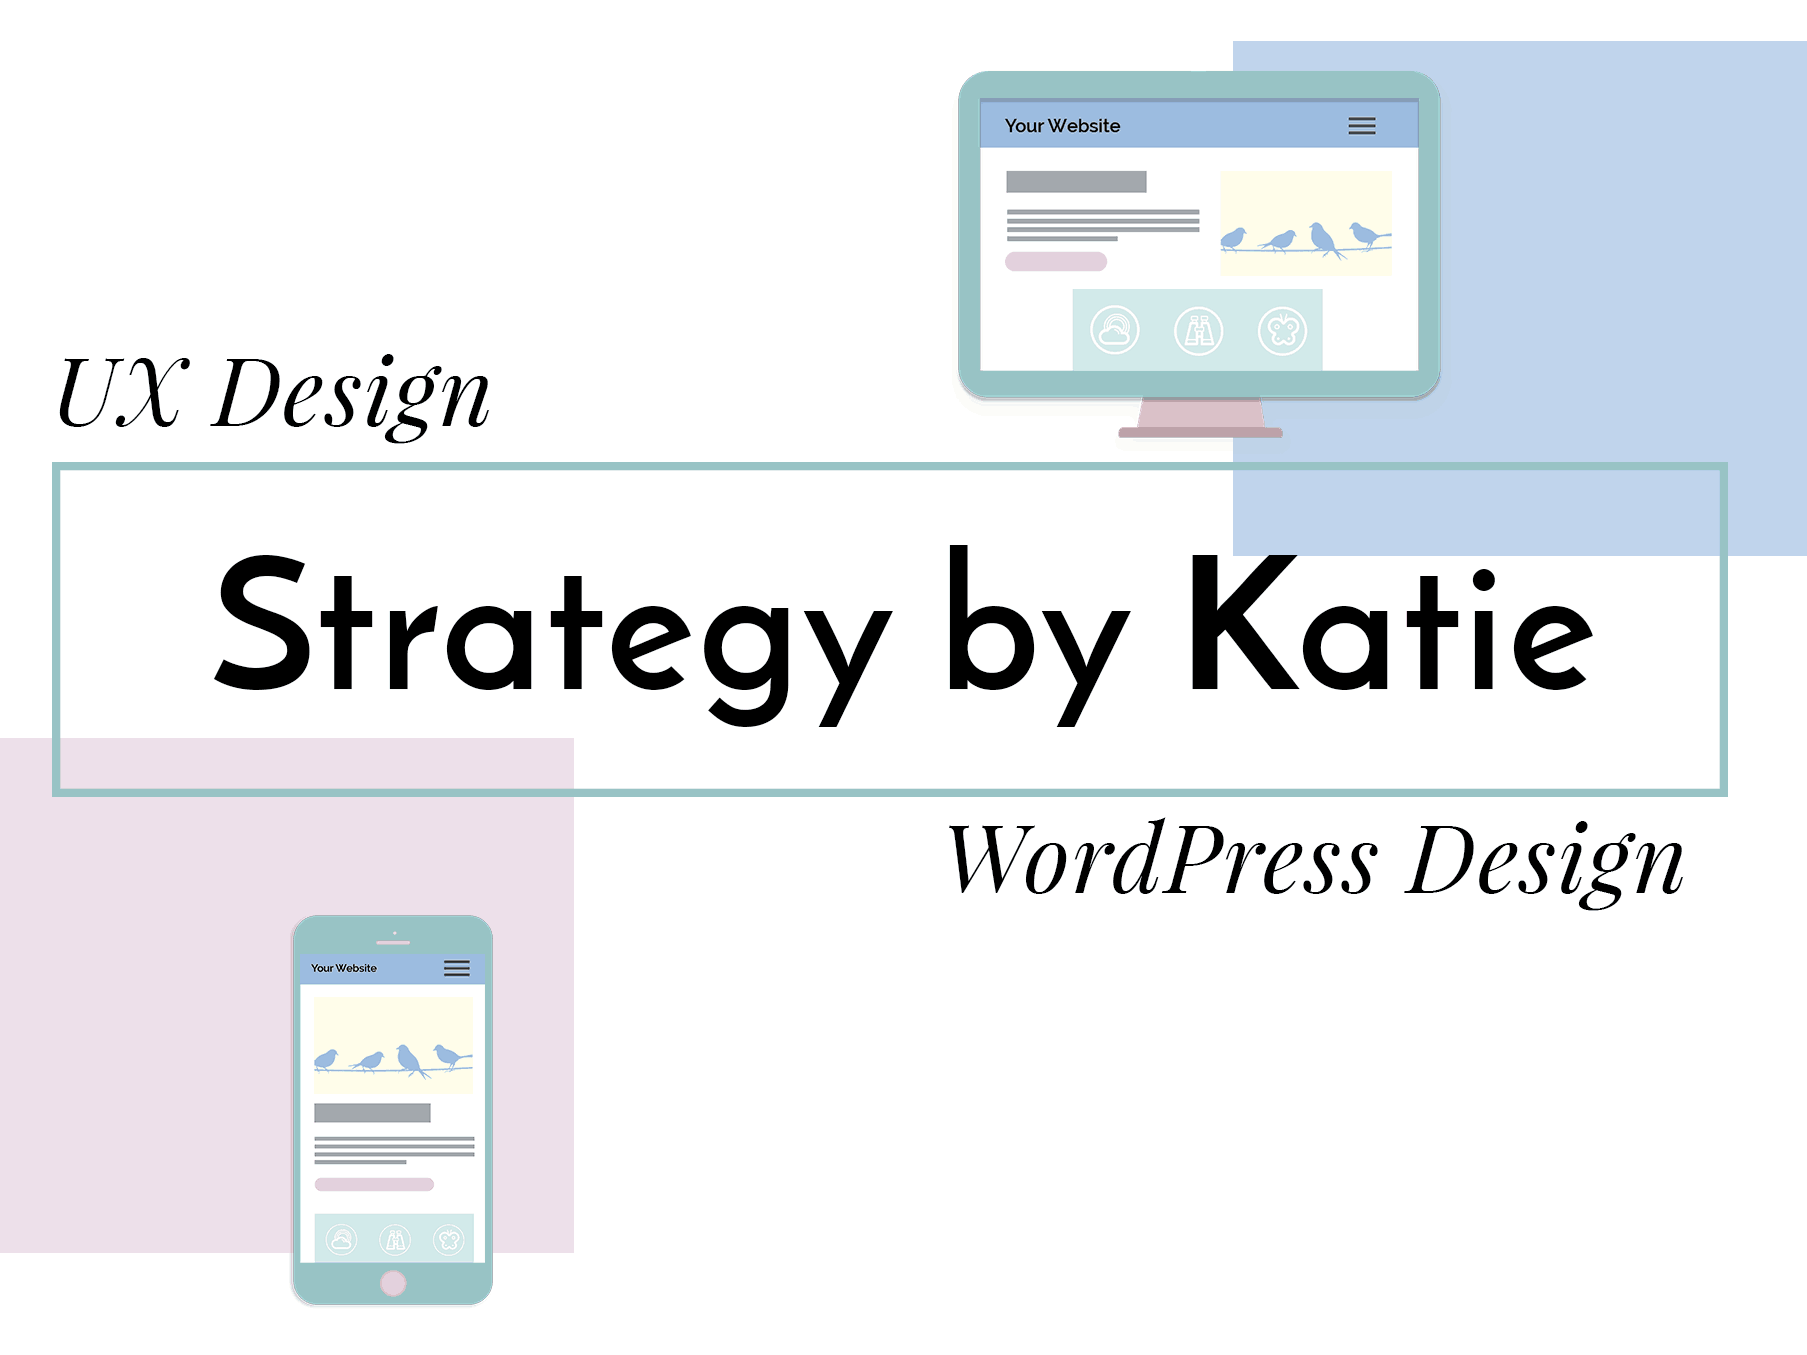 Strategy by Katie UX Design and WordPress Design